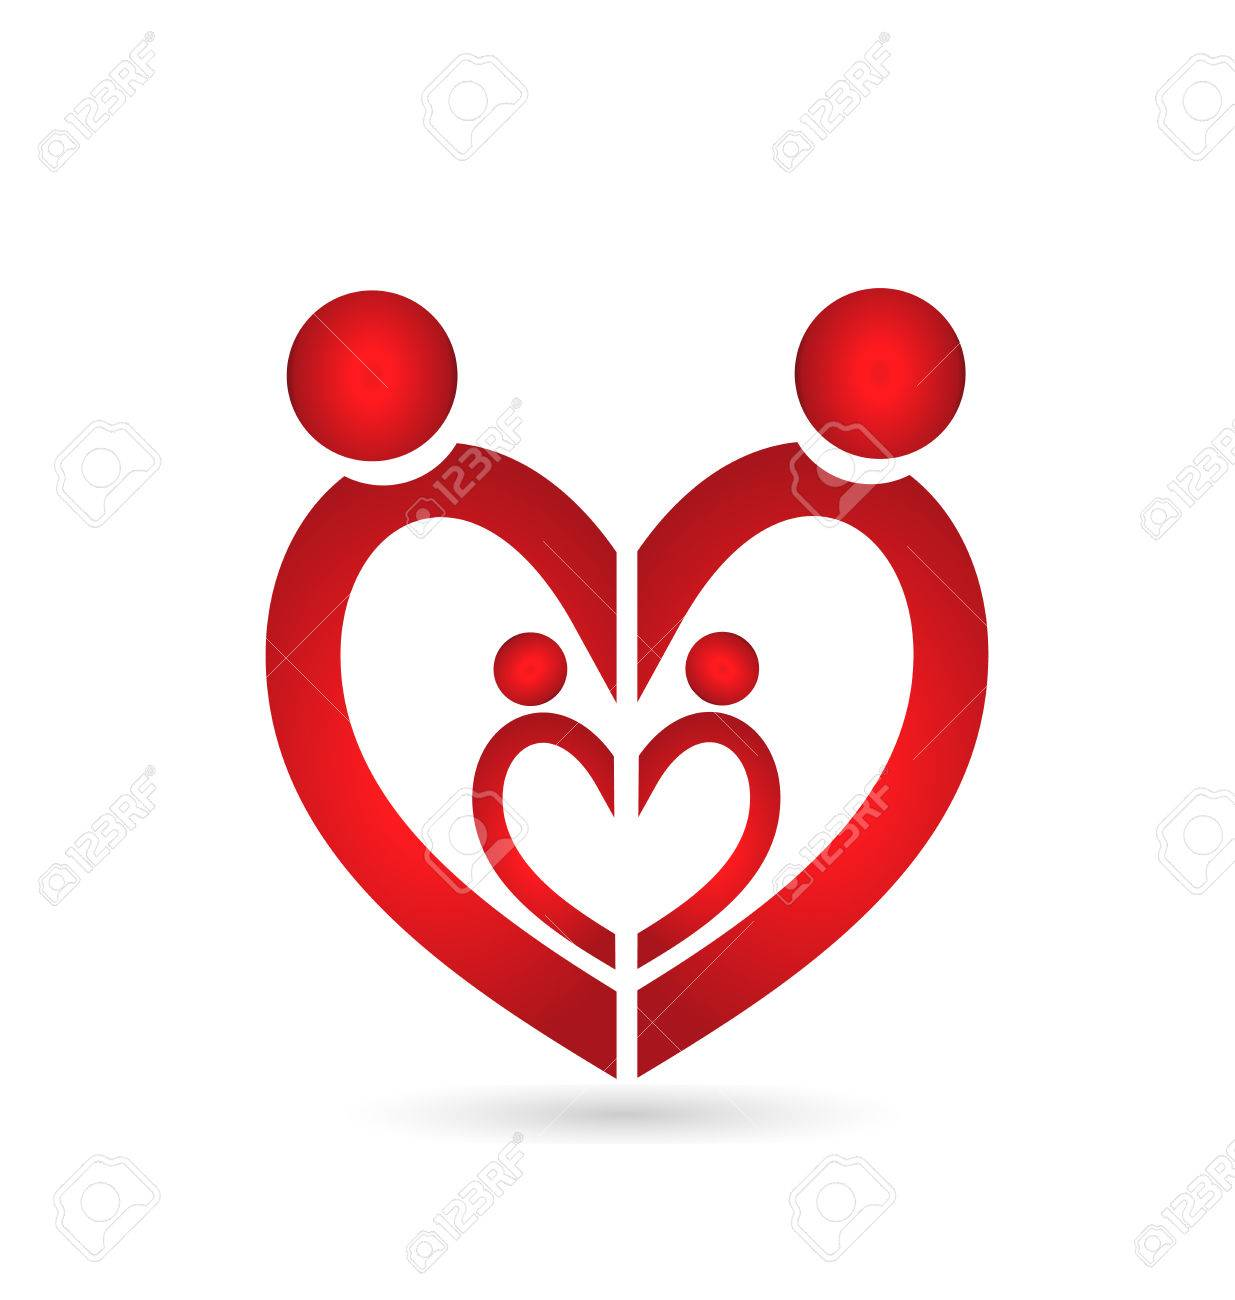 Family Union Symbol Heart Royalty Free Cliparts Vectors And Stock